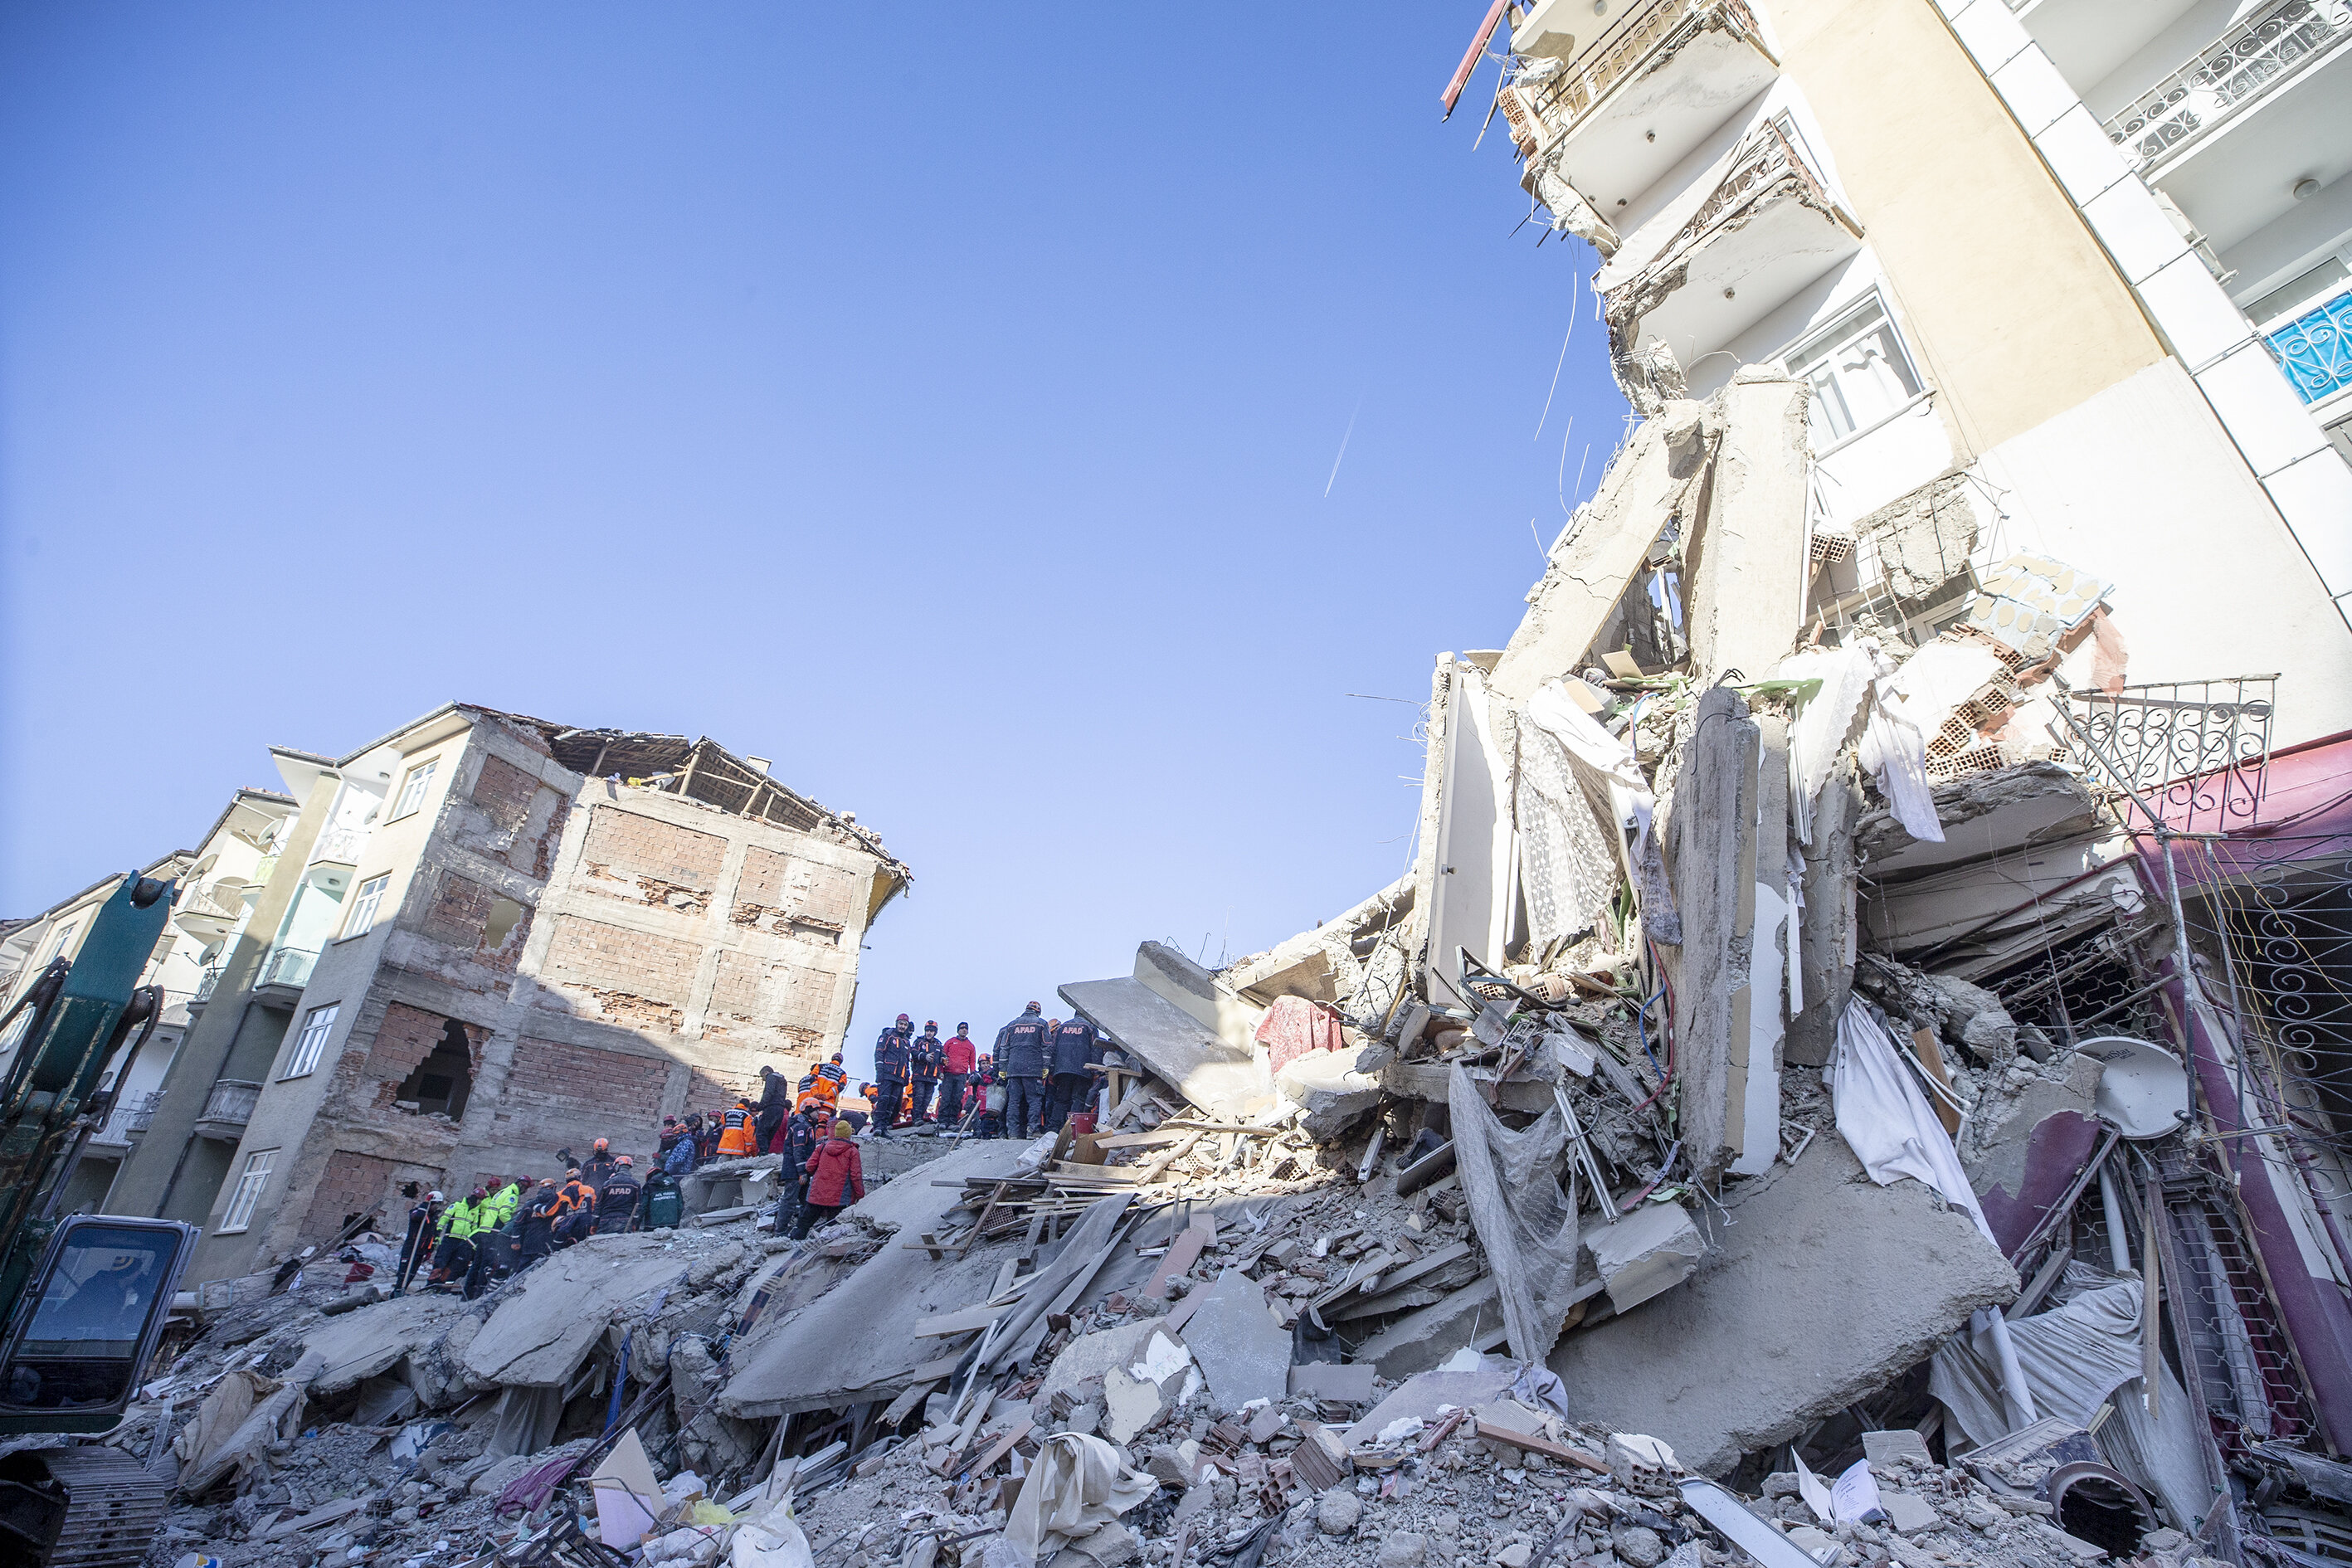 Earthquake aftermath in the eastern Turkish city of Elazığ